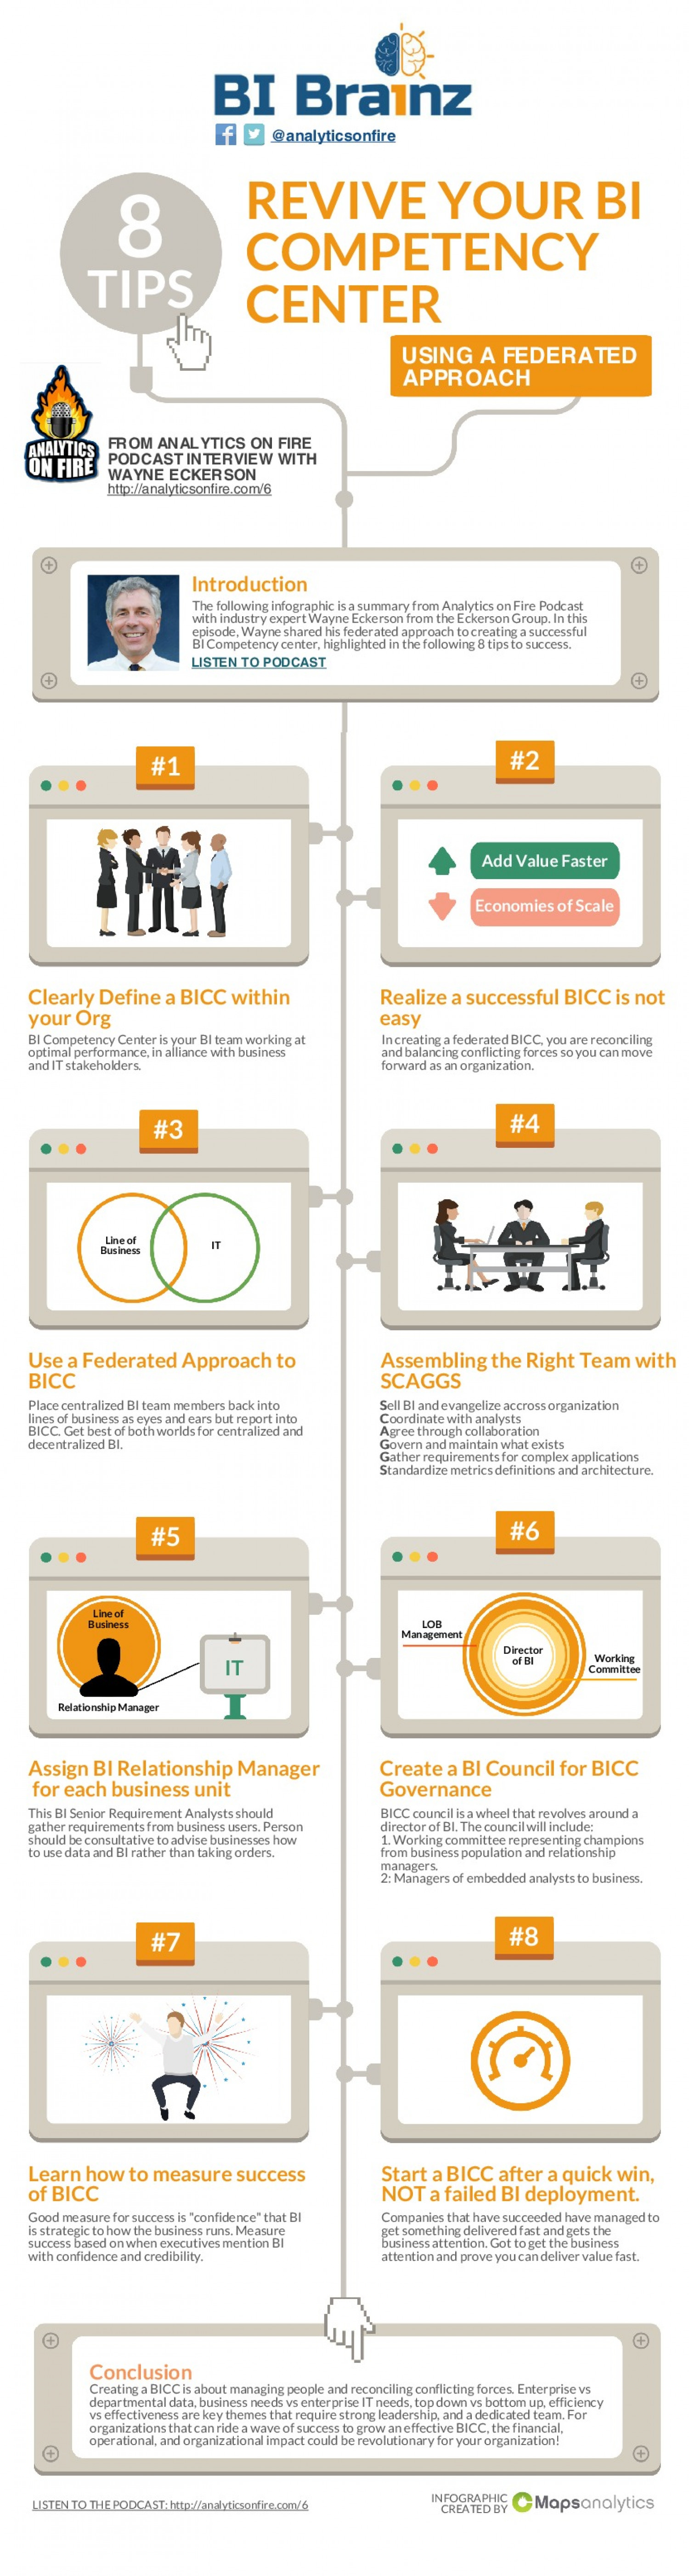 8 Tips to Revive your Bi Competency Center with Wayne Eckerson Infographic